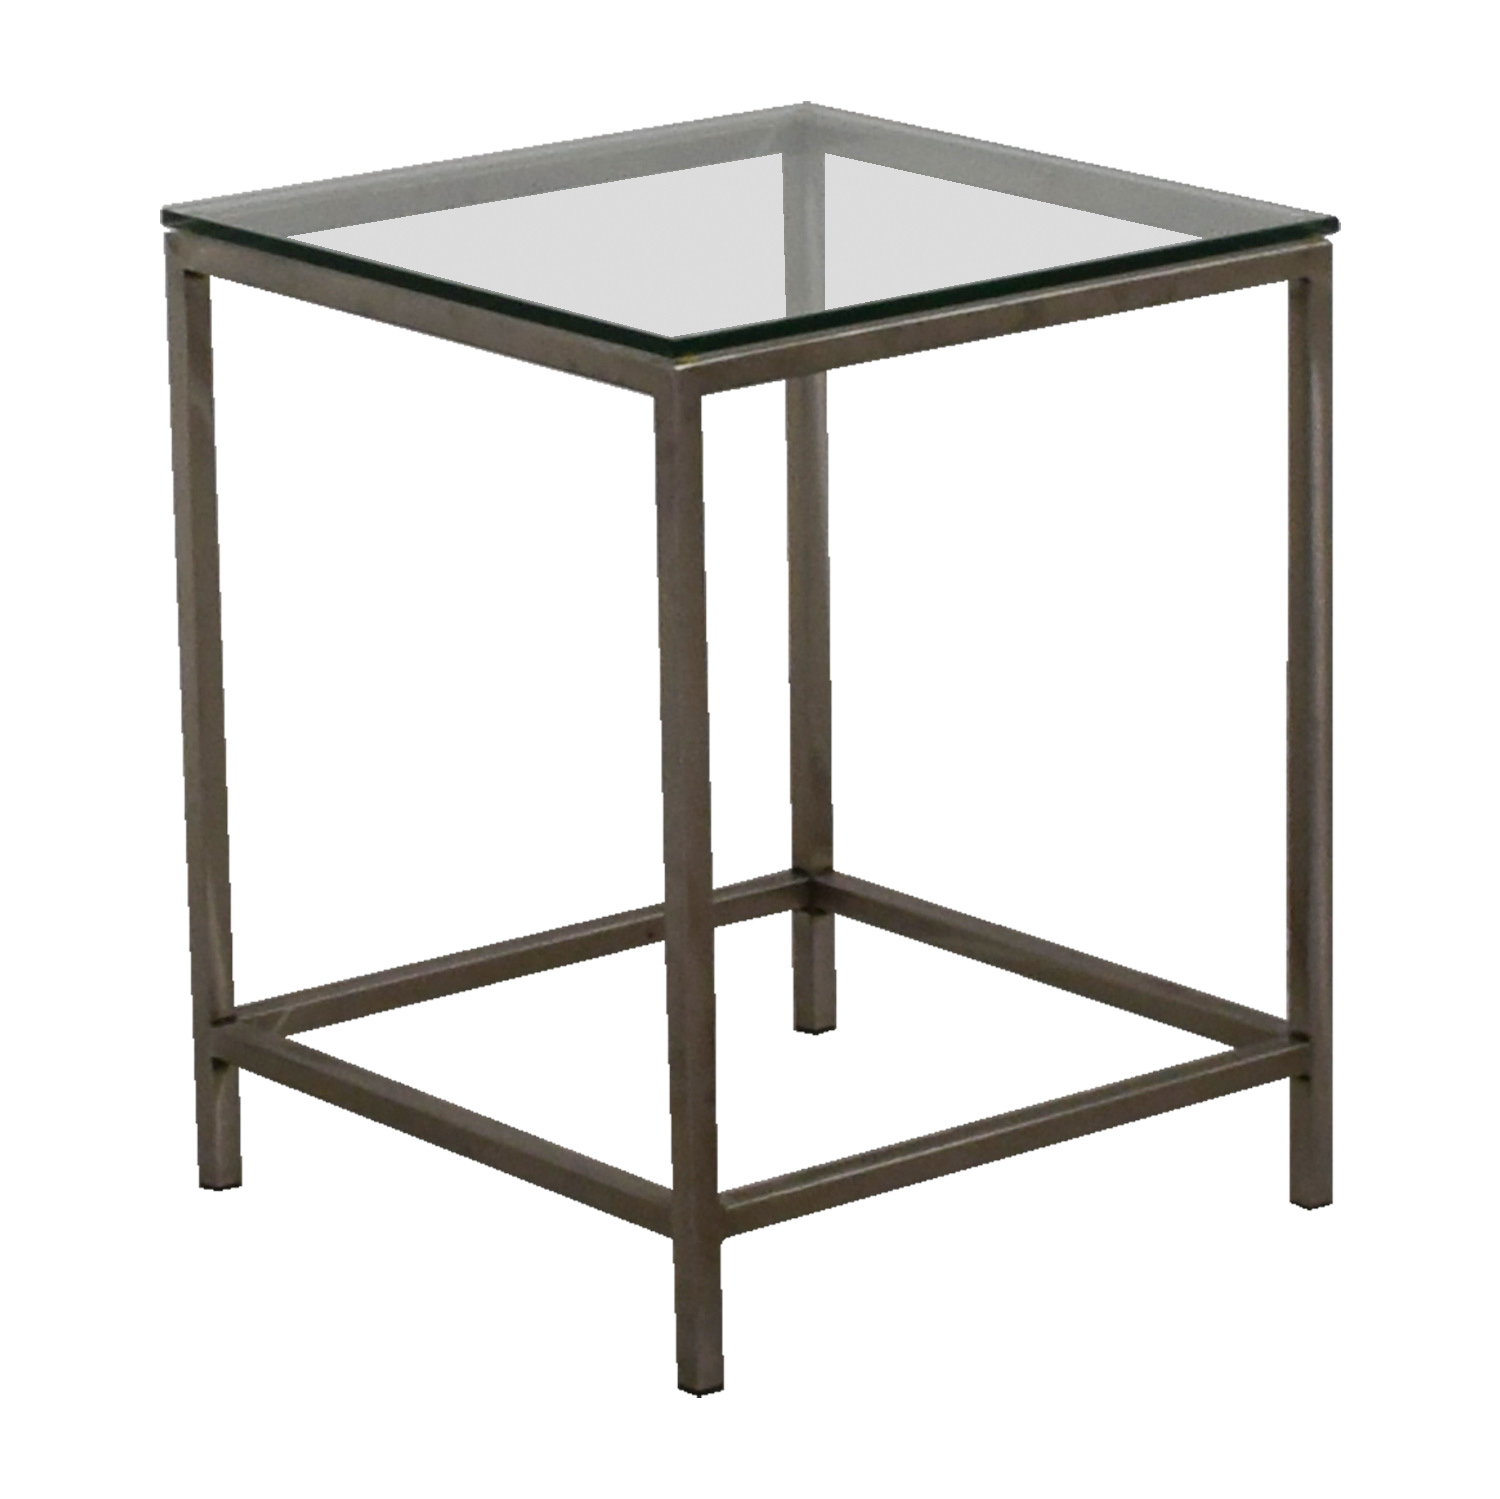 Crate And Barrel Tables: Crate & Barrel Crate & Barrel Square Glass And